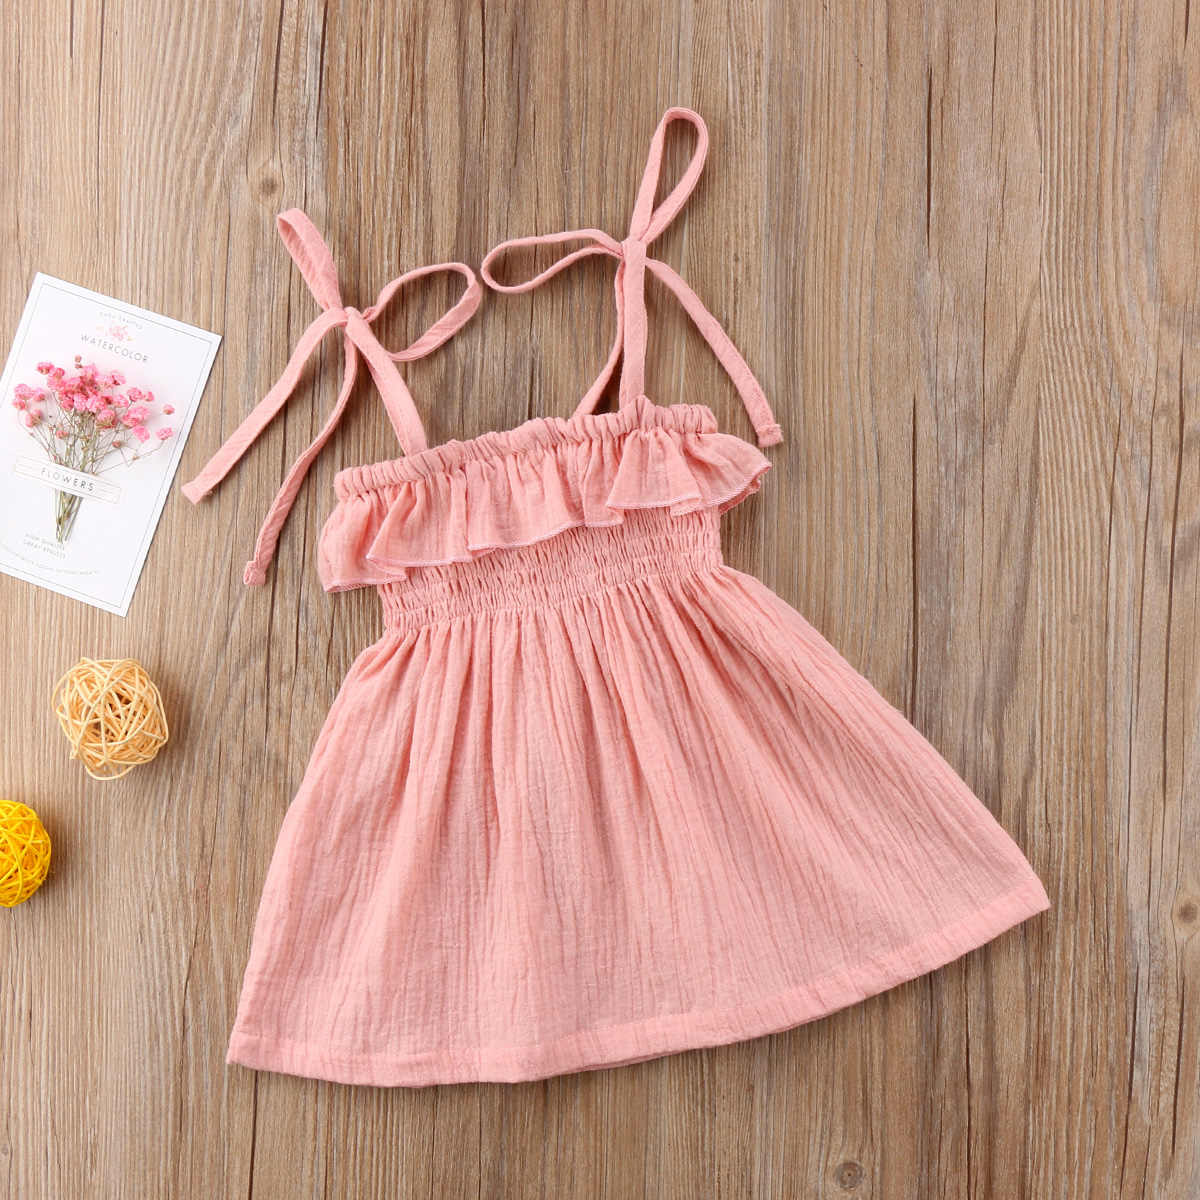 a13ef748a7 ... Toddler Infant Kids Baby Girls Summer Bathing Suit Bikini Beach Cover  Ups Dress Princess Party Wedding